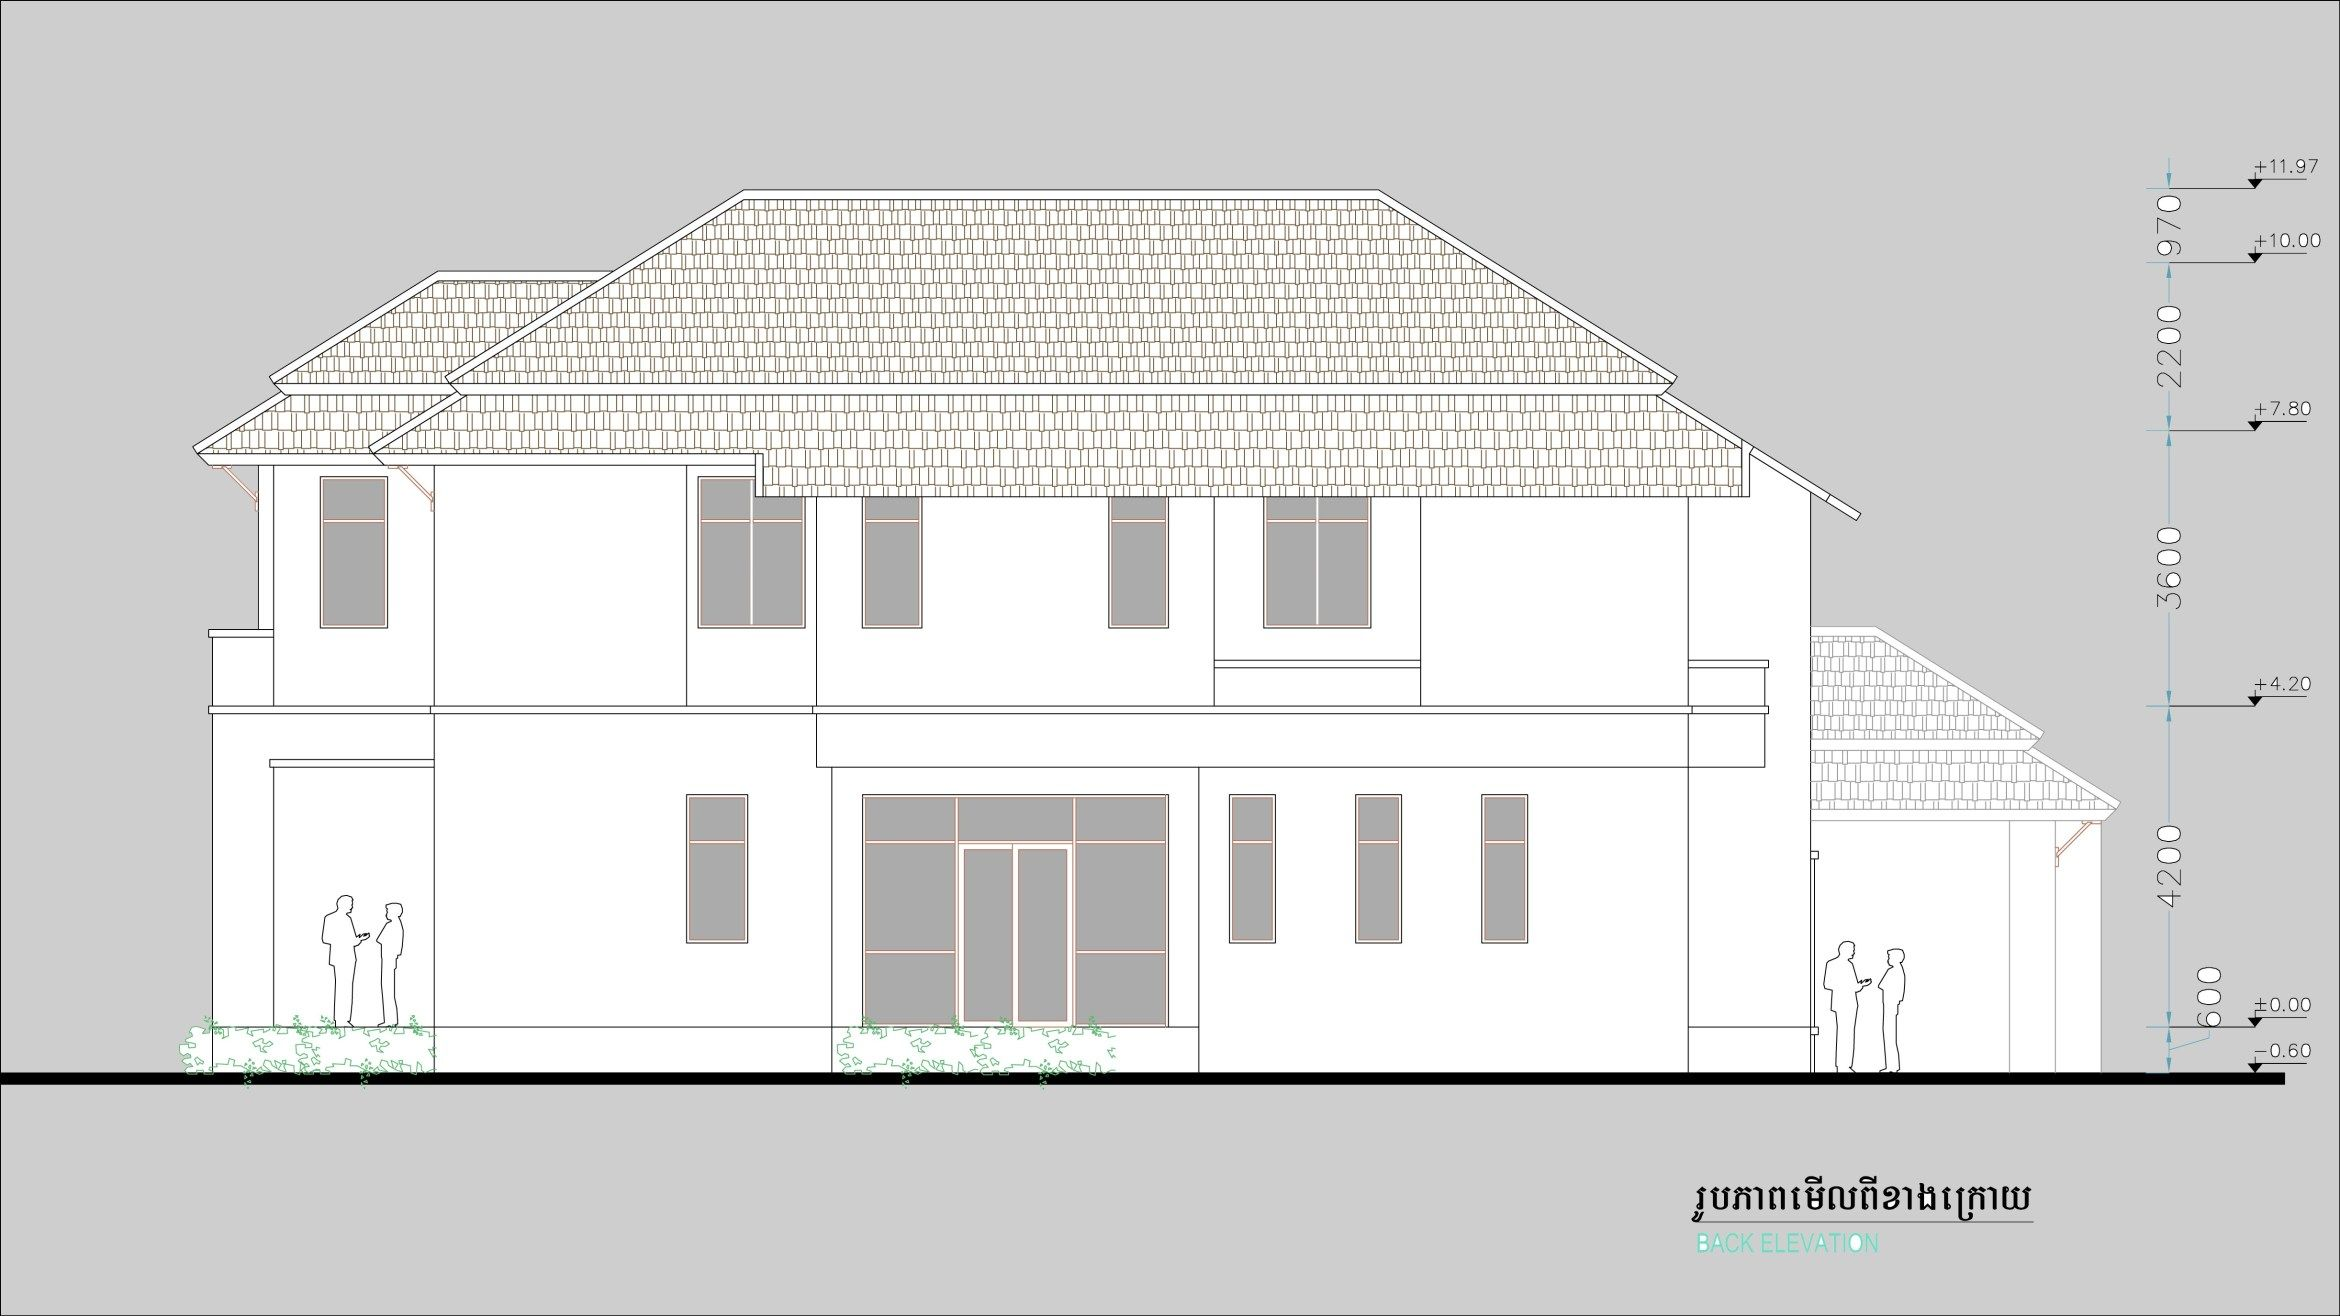 4 Bedroom House Size 15,7x16,2m 4 bedroom house, House